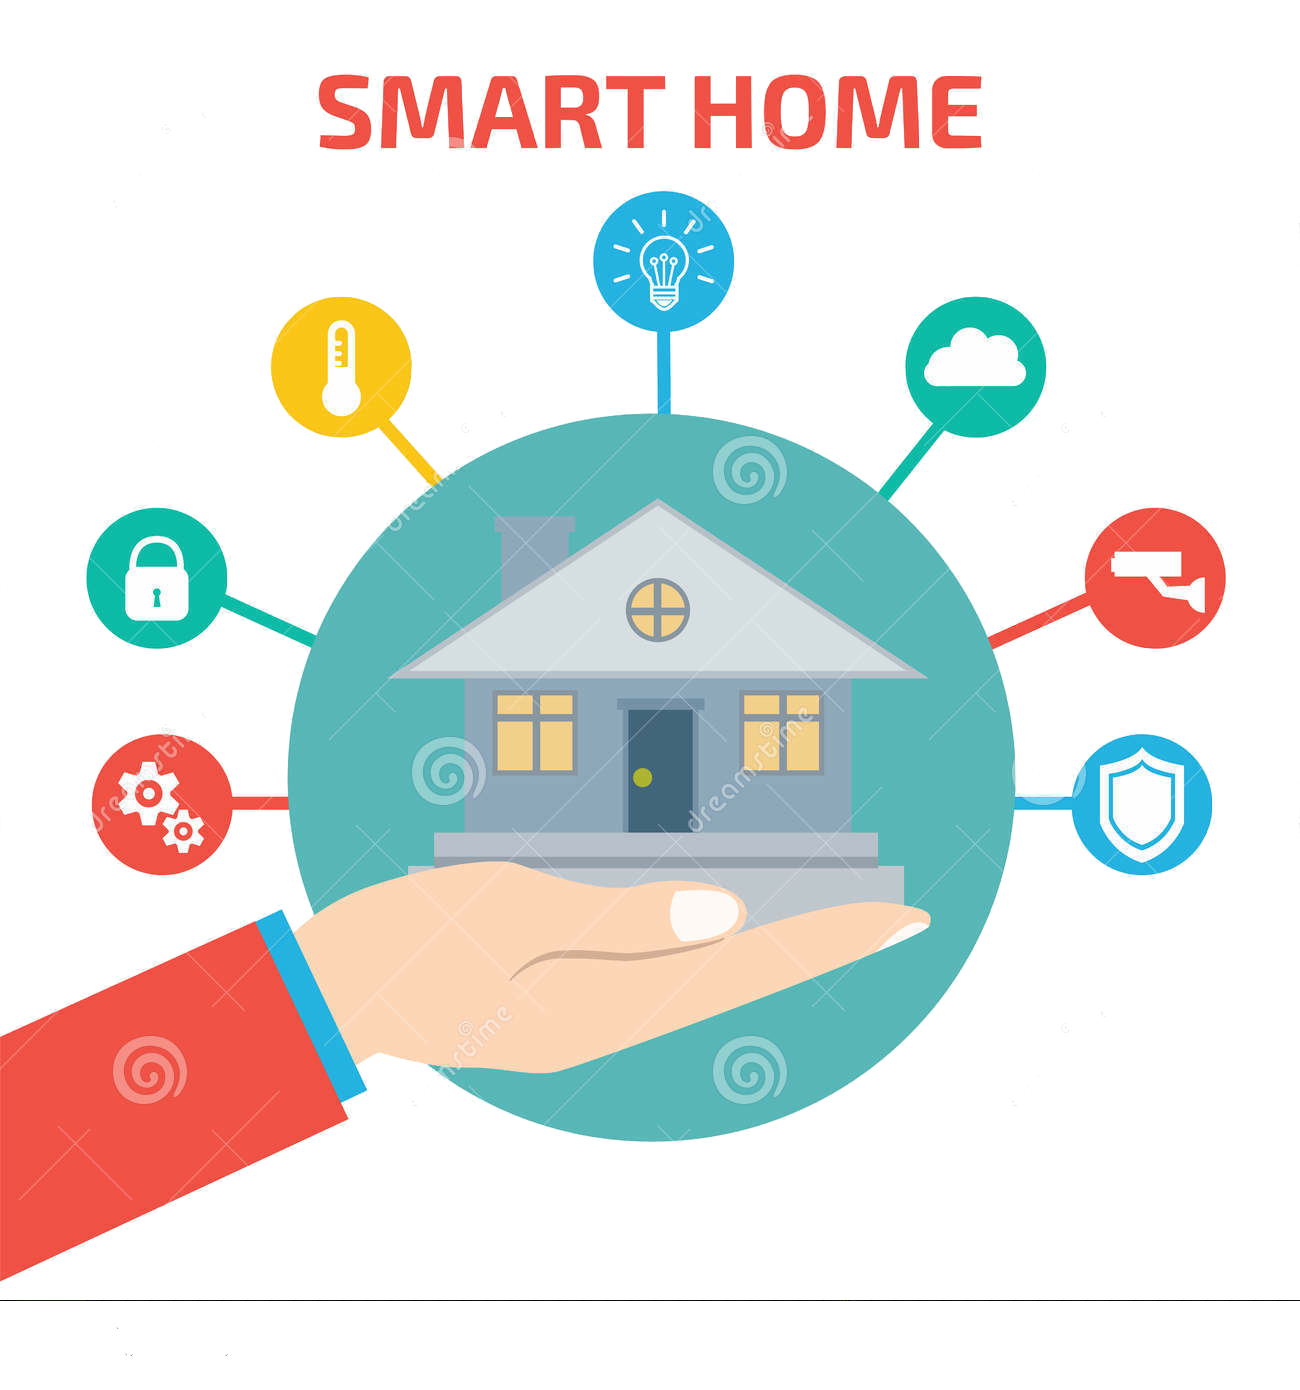 People talking clip art in addition 3d home design house additionally - In Addition The Device Can Be Trained To Recognise The Owner S Voice Only Additionally The Owner Can Control Several Devices Like Fan Lights And Book